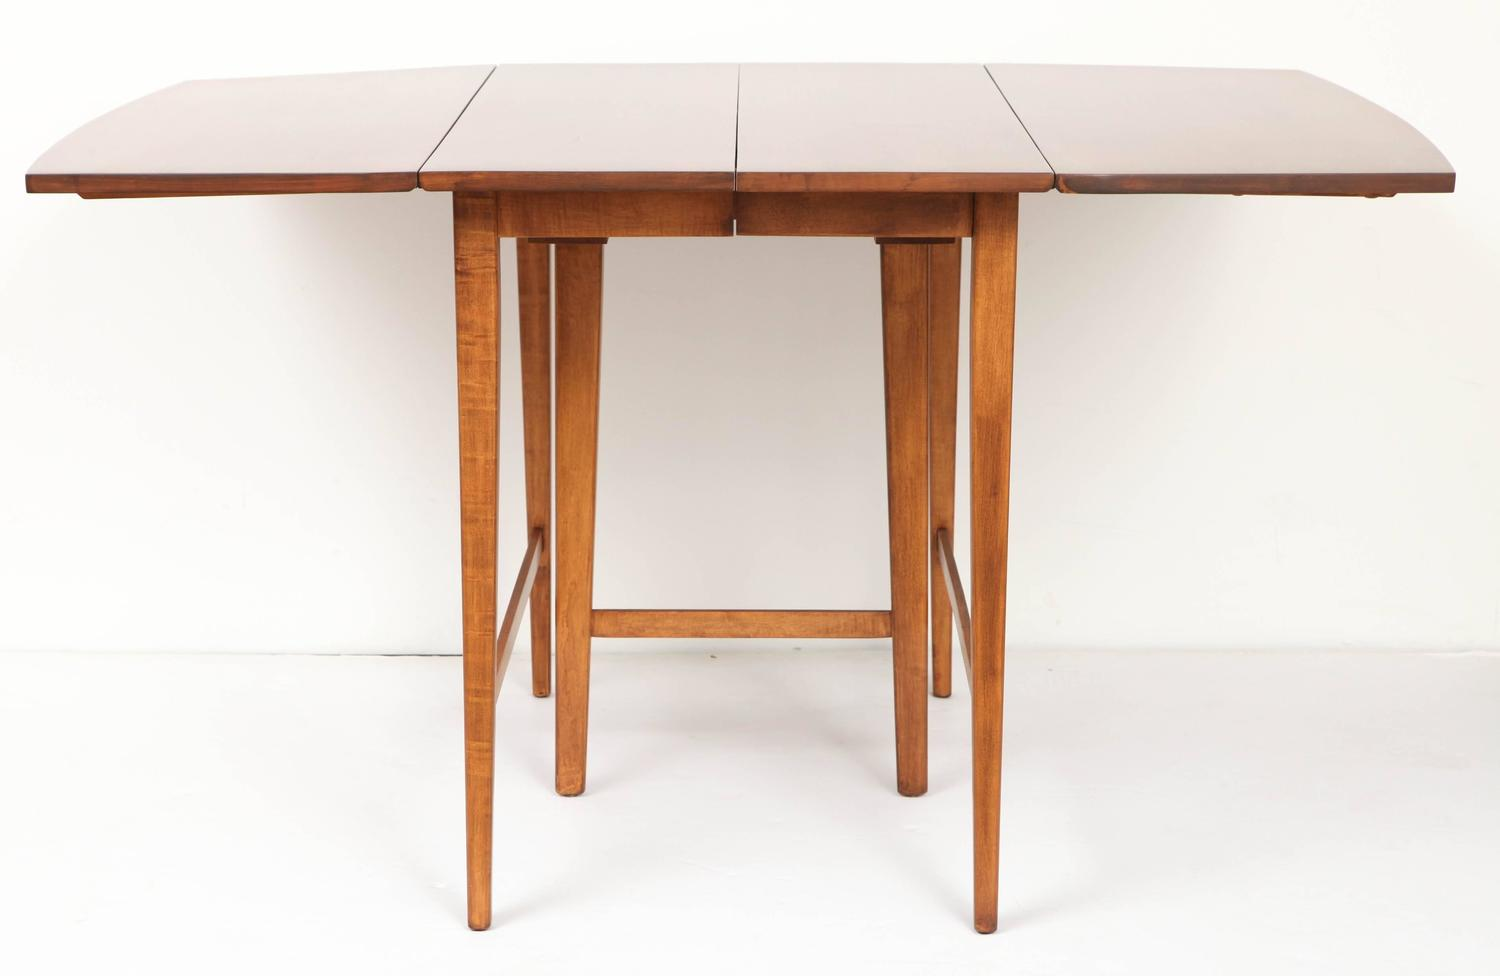 Paul mccobb planner group drop leaf extension table for for Drop leaf extension table